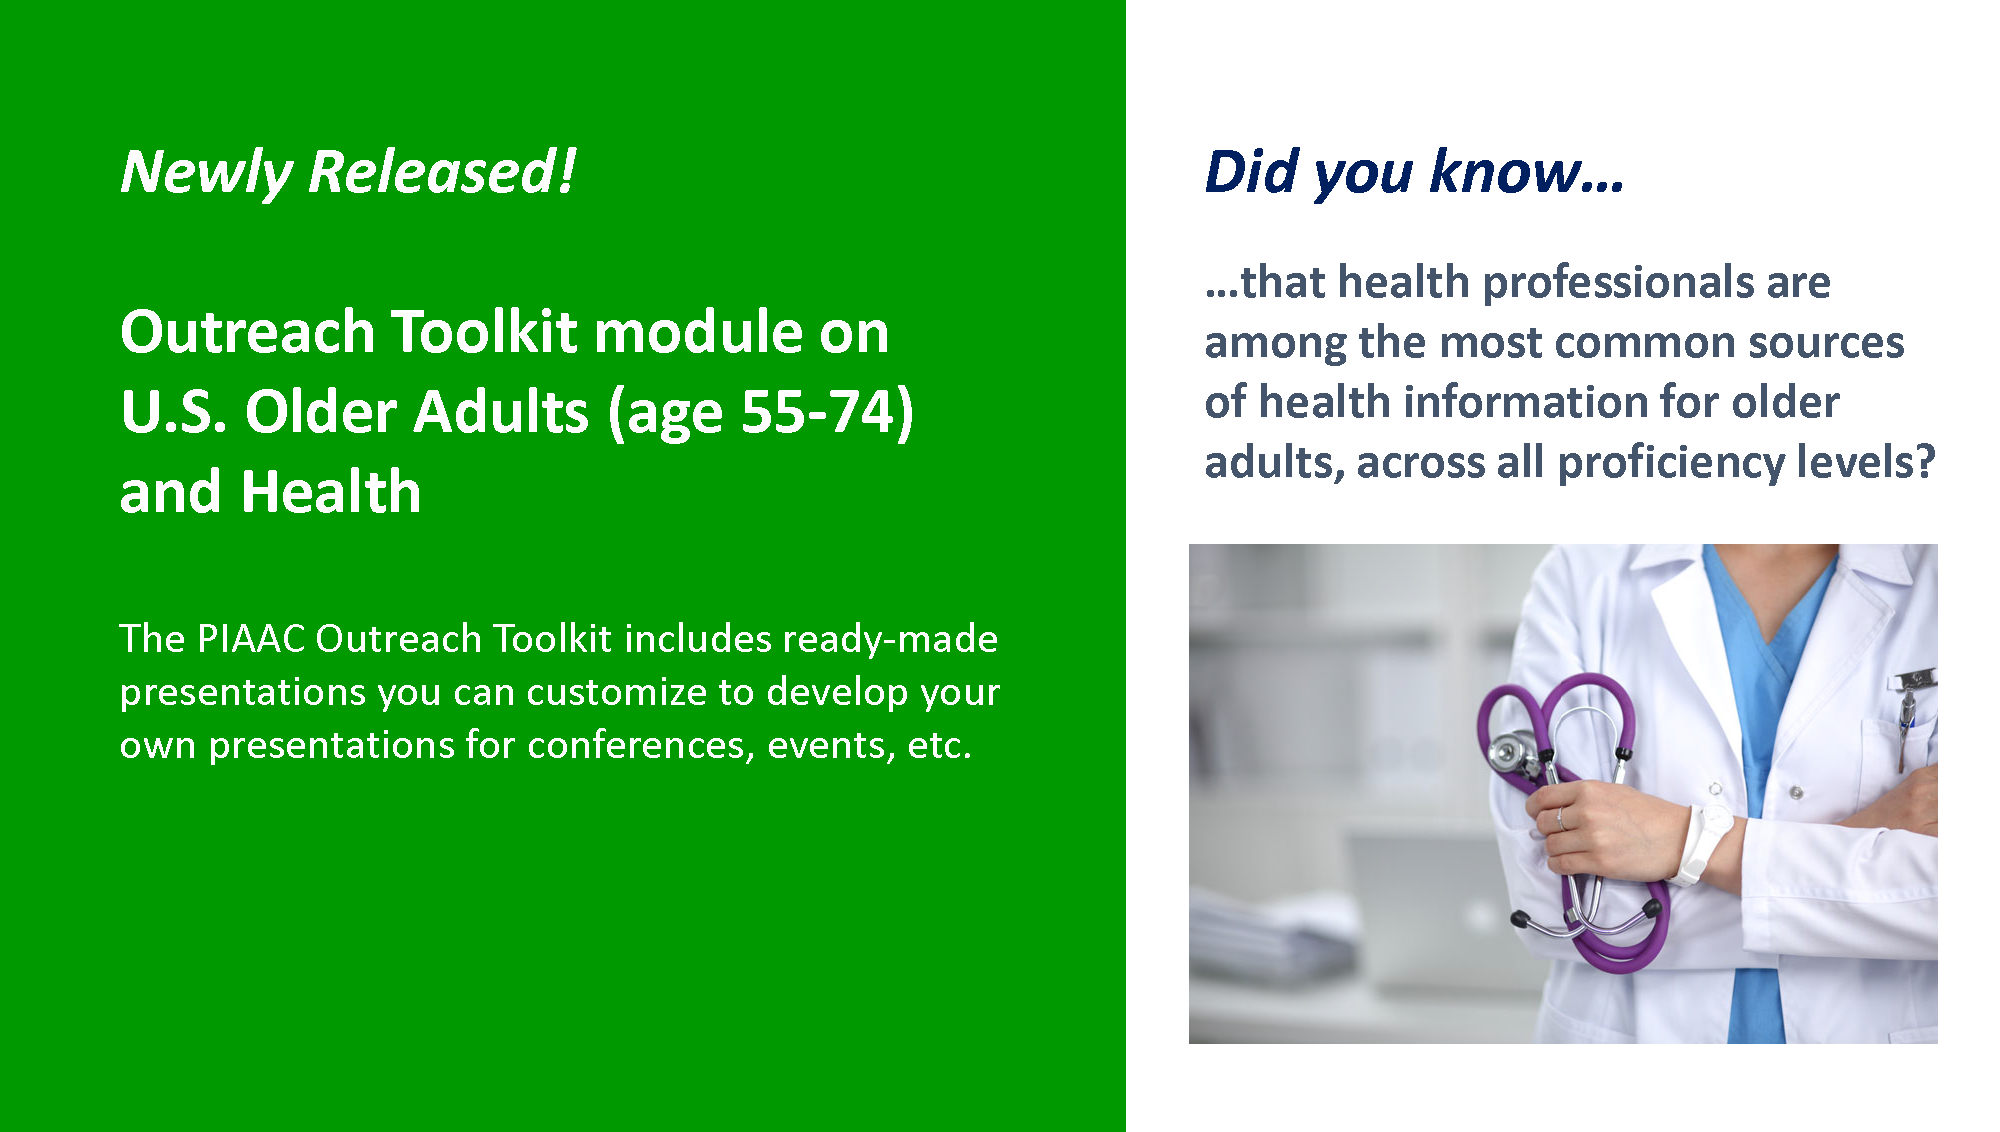 Outreach Toolkit on U.S. Older Adults and Health